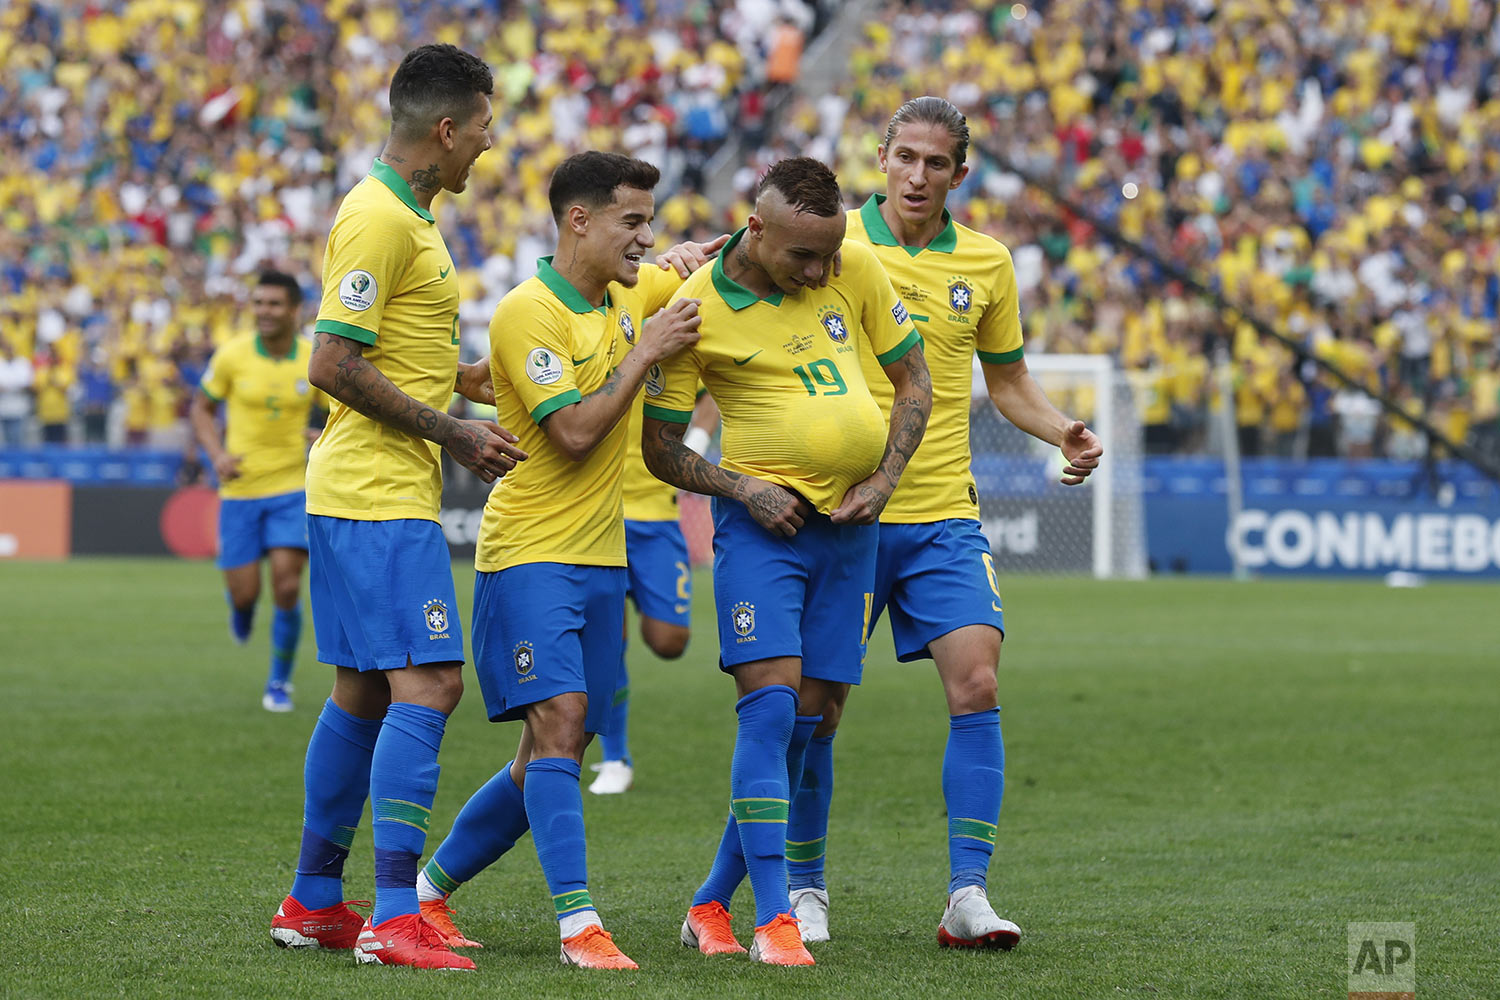 Brazil players congratulate teammate Everton, with the ball under his jersey, after he scored his side's third goal against Peru during a Copa America Group A soccer match at  Arena Corinthians in Sao Paulo, Brazil, Saturday, June 22, 2019. (AP Photo/Victor R. Caivano)